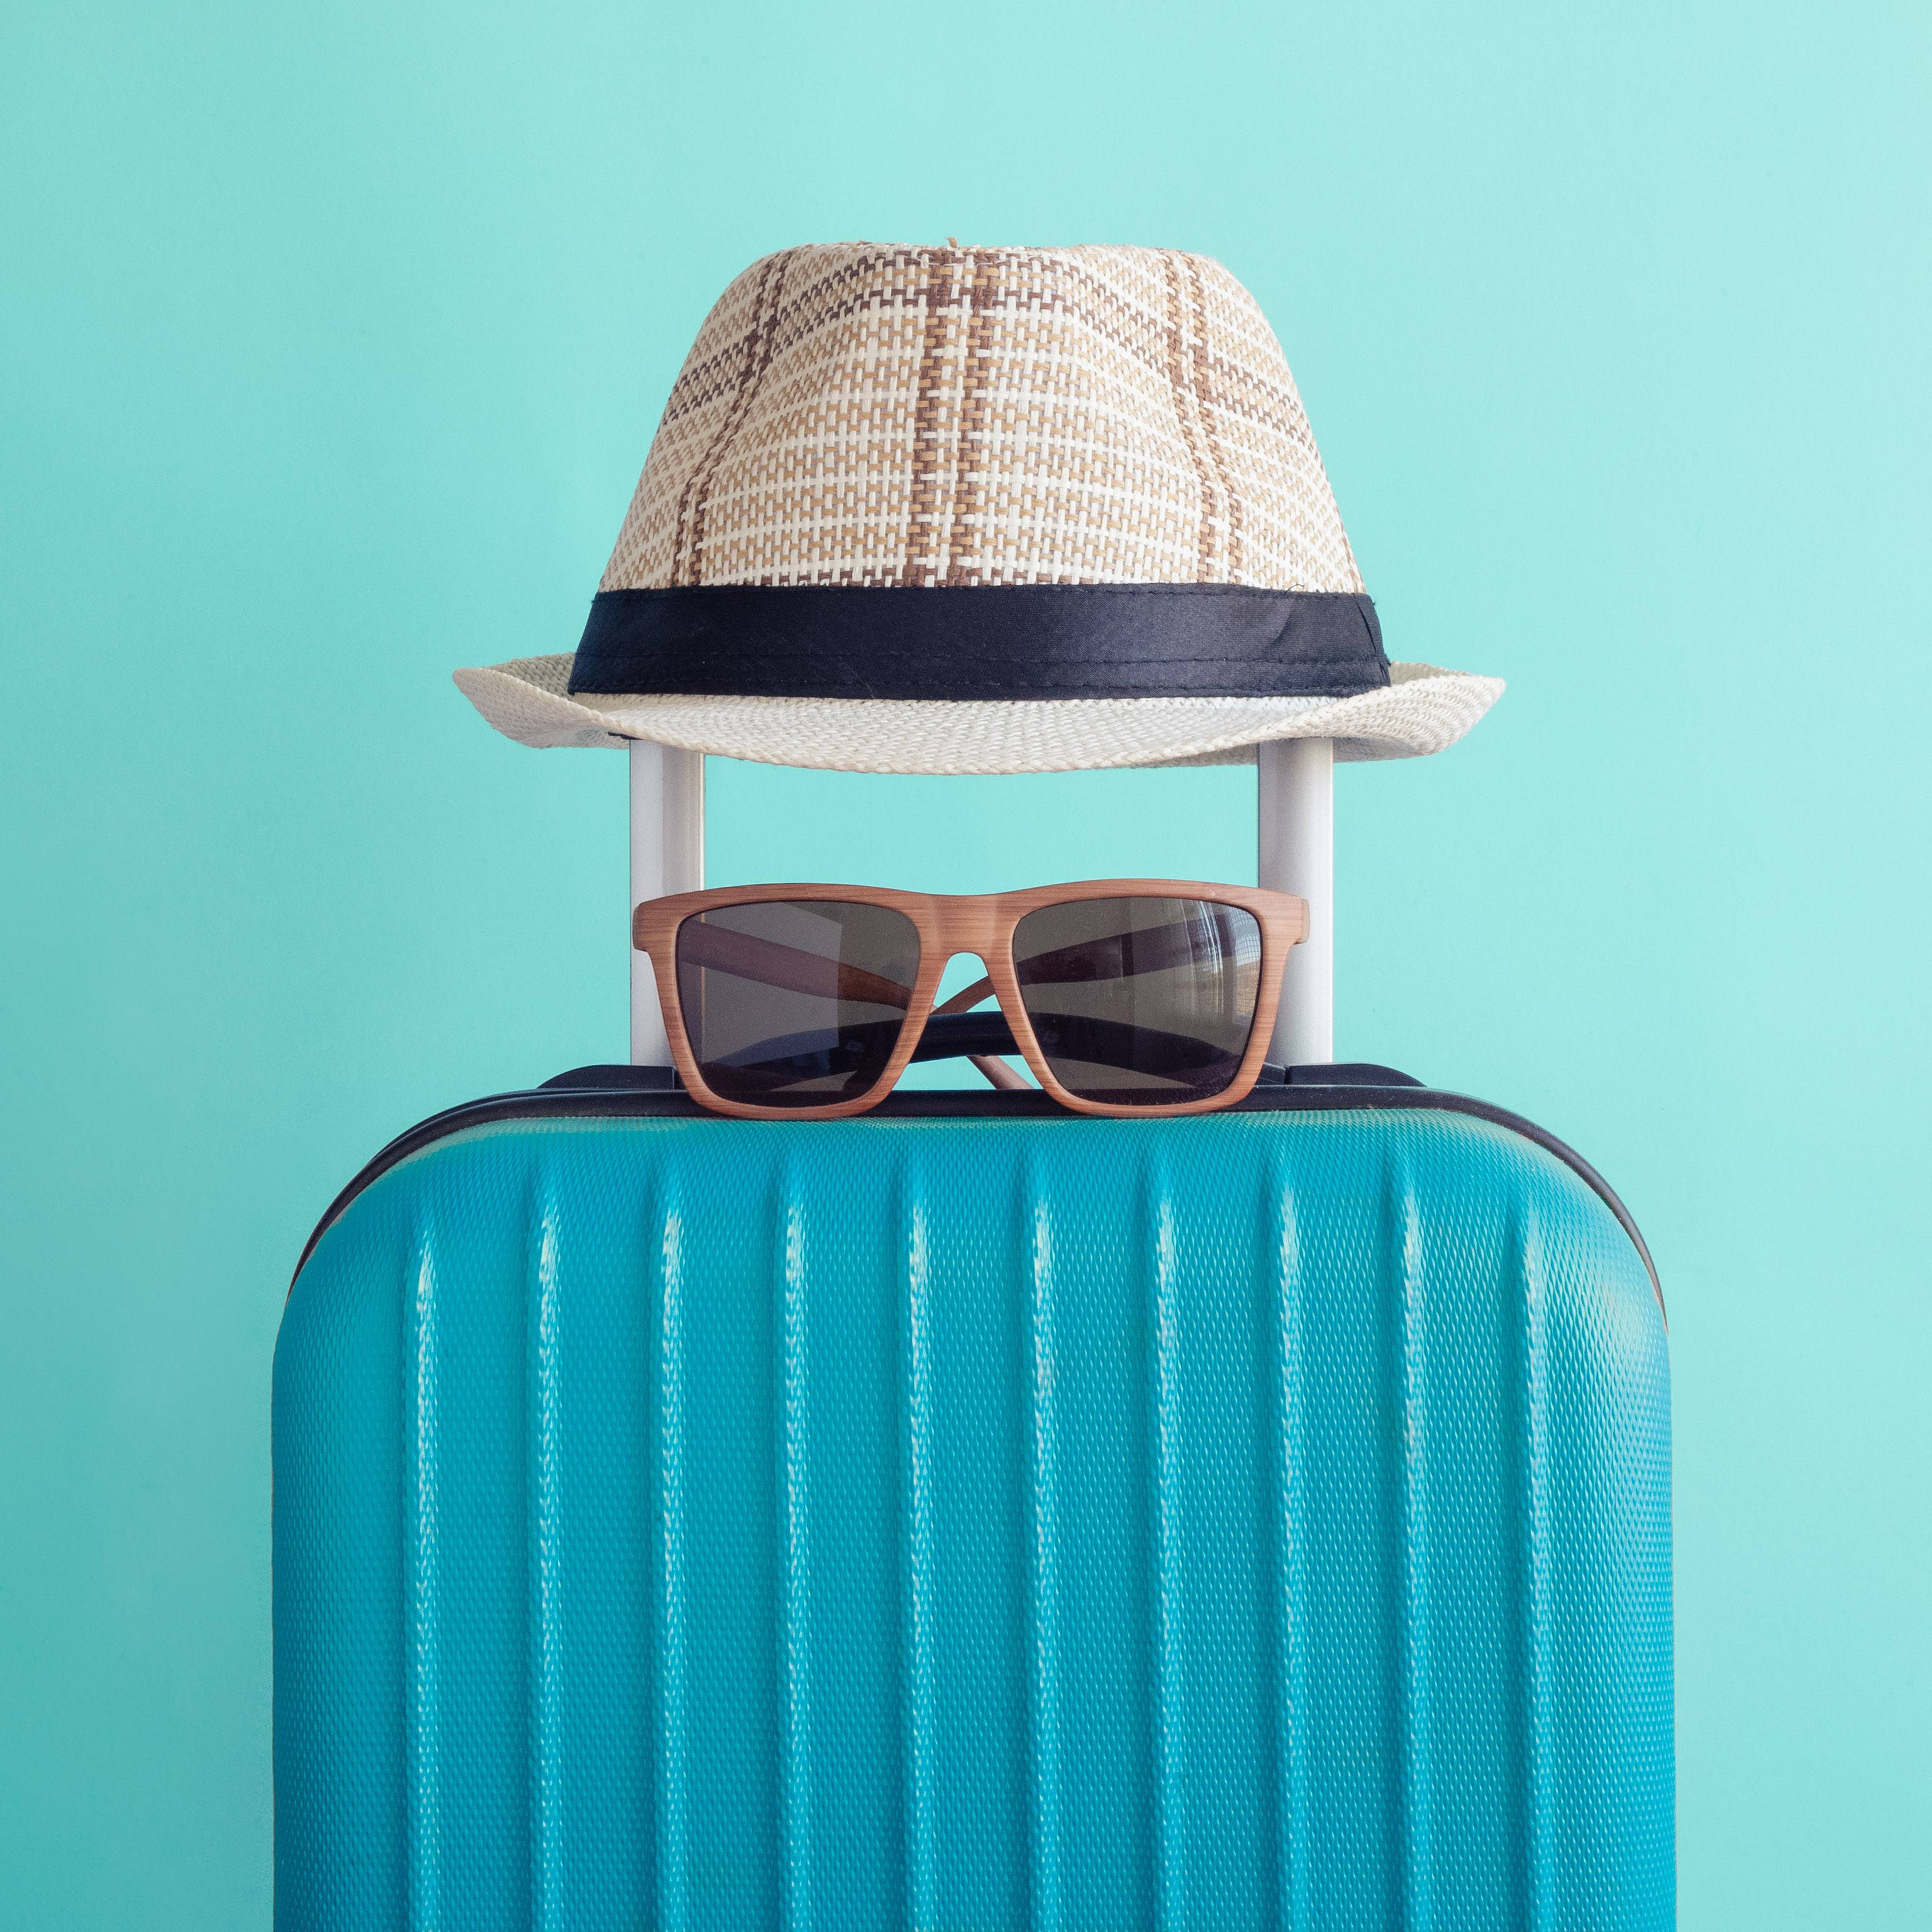 a suitcase with a hat and pair of sunglasses